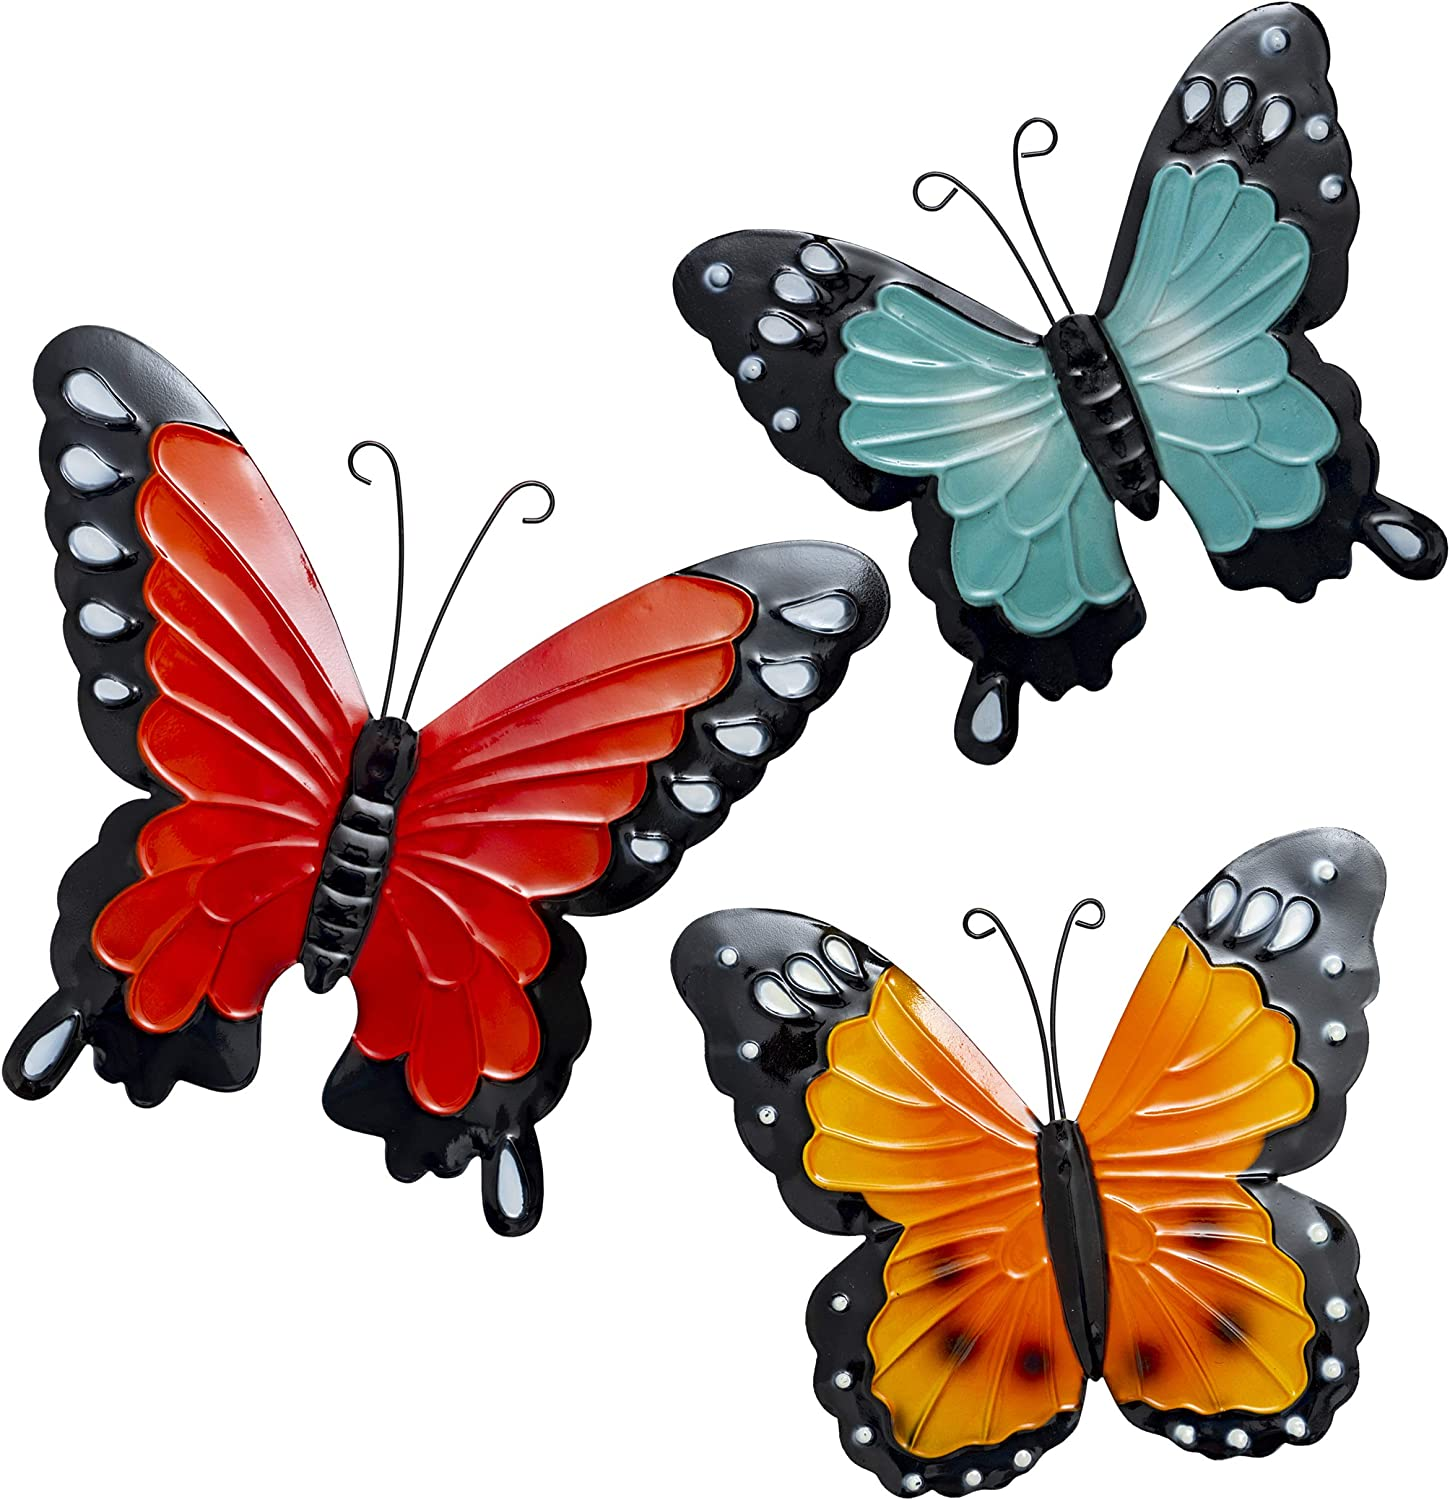 Besti Butterfly Wall Decorations – Metal Butterflies Outdoor Décor – Butterfly Wall Art for Indoor and Outdoor Use – Beautiful Backyard Wall Decorations – 3 pieces Blue, Yellow, Orange